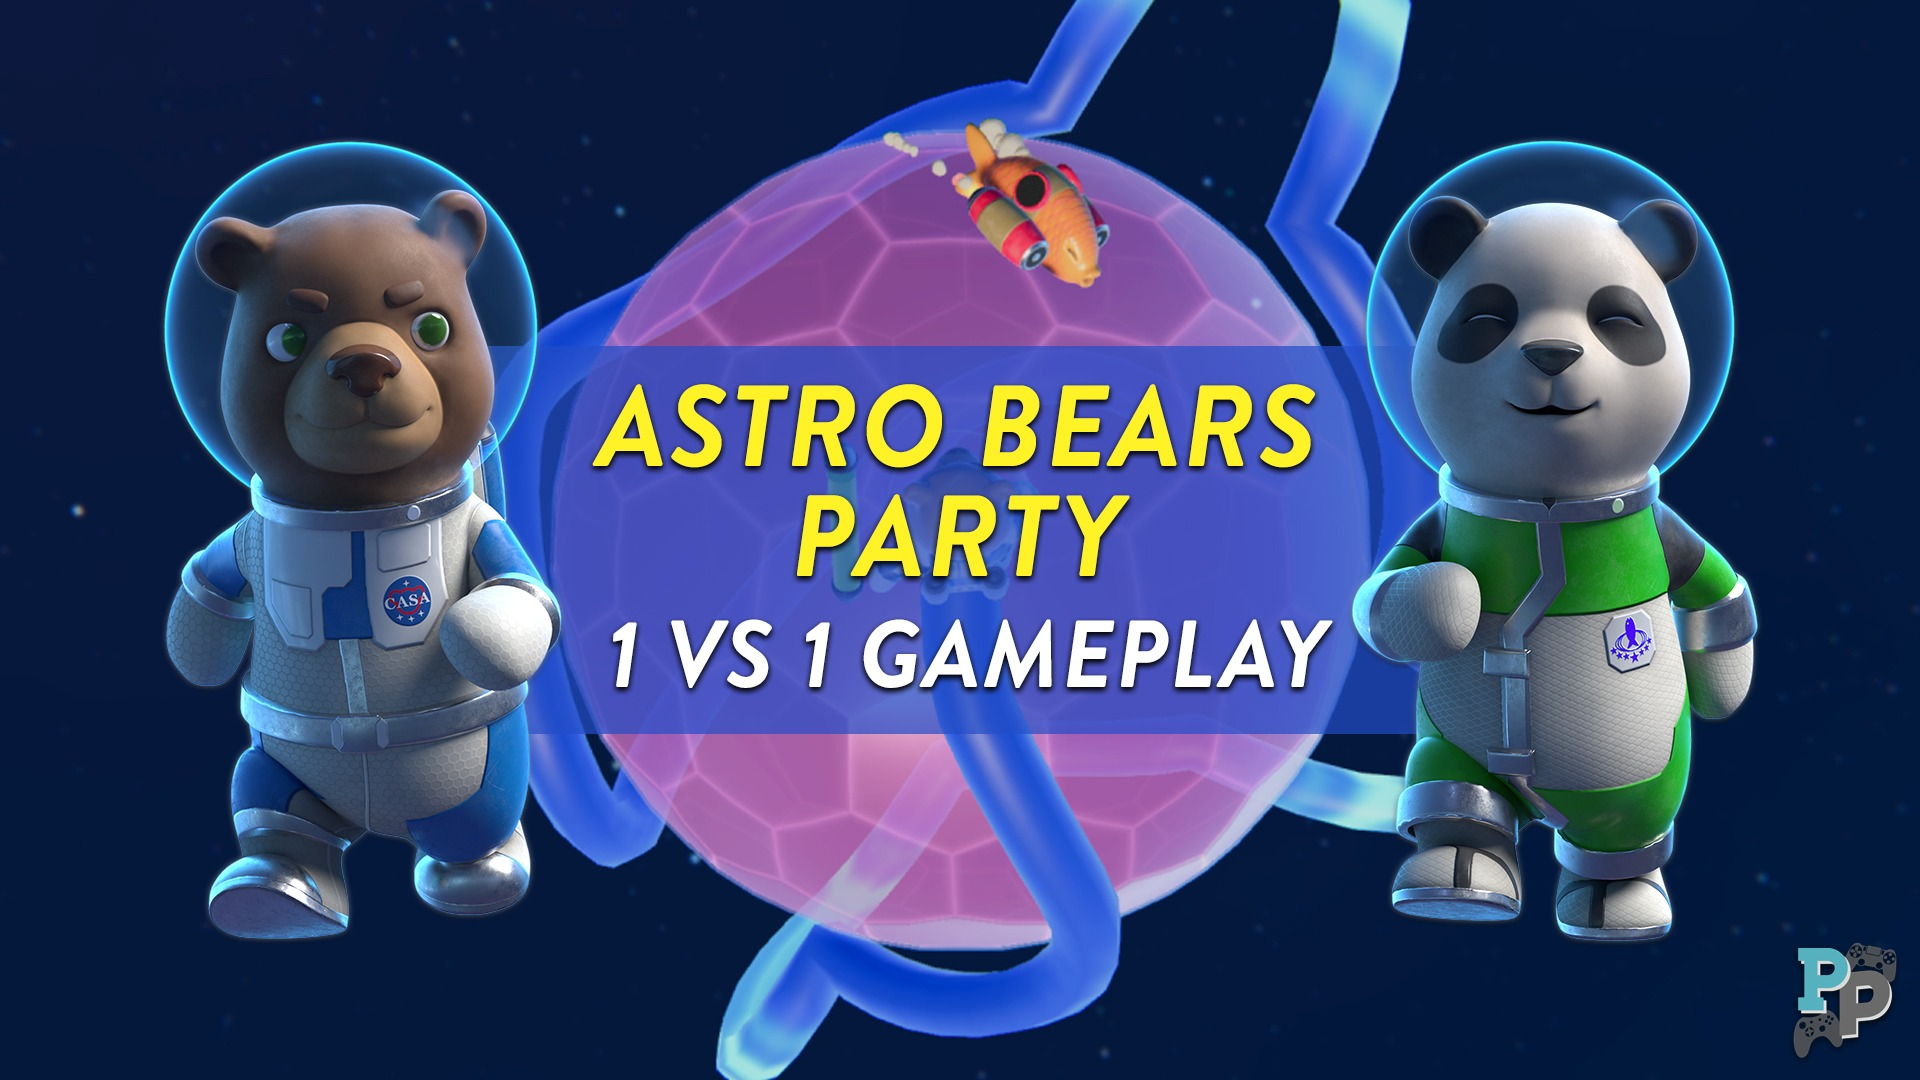 Astro Bears Party: Fun Snake-like game